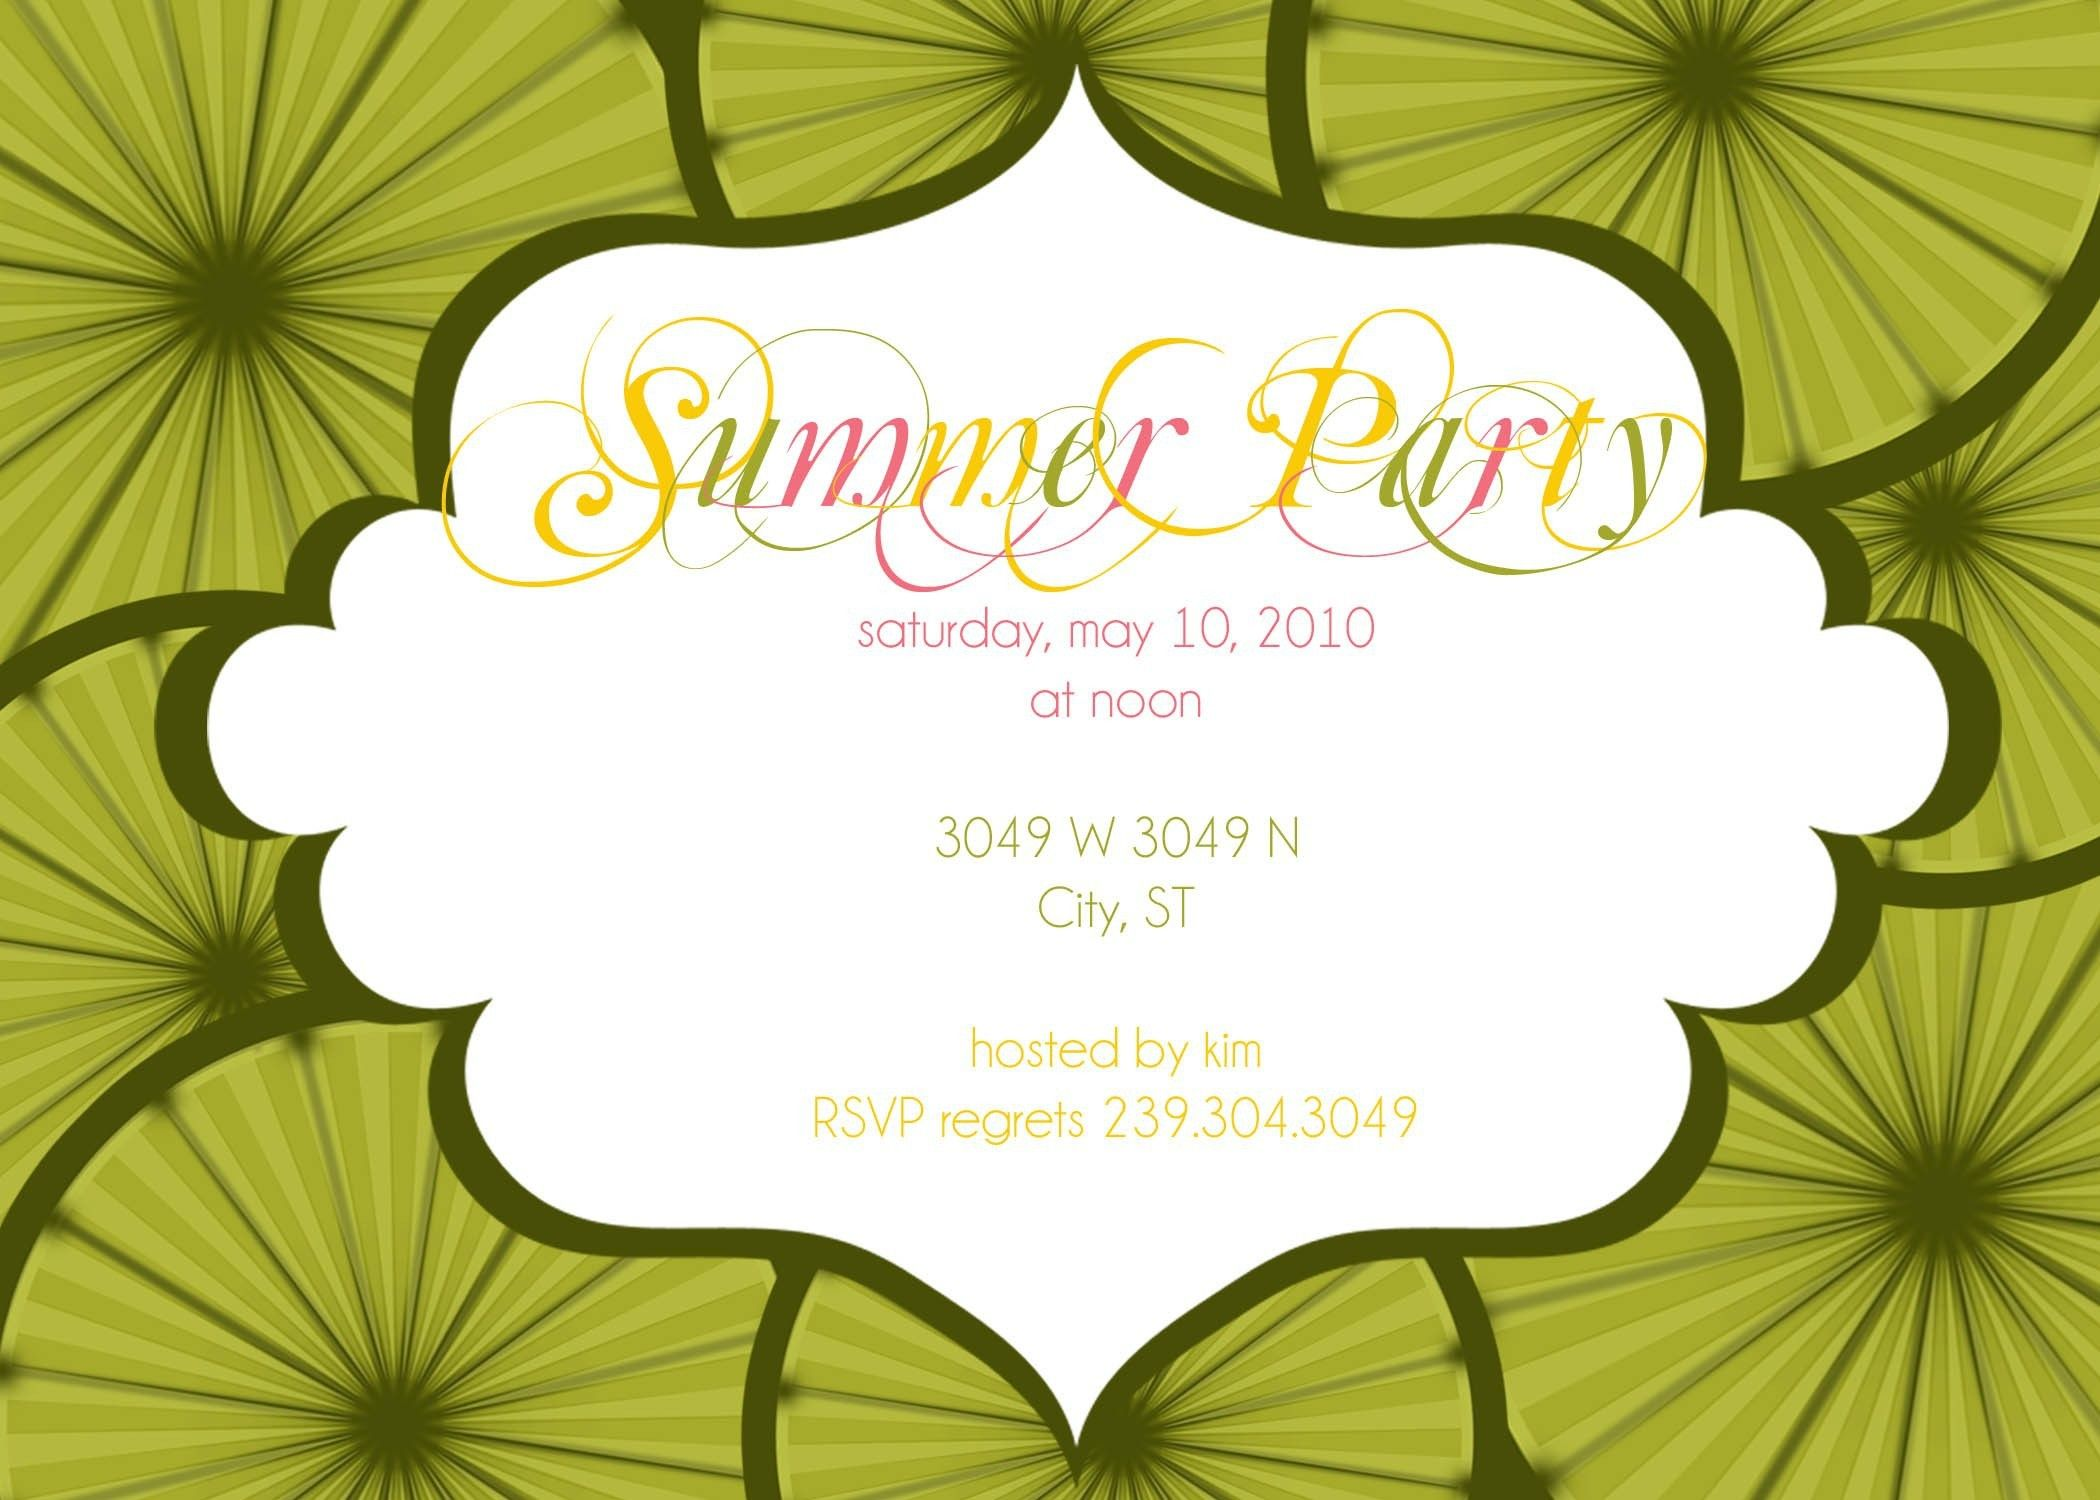 Summer party invitation wording samples invitations card summer party invitation wording samples stopboris Gallery